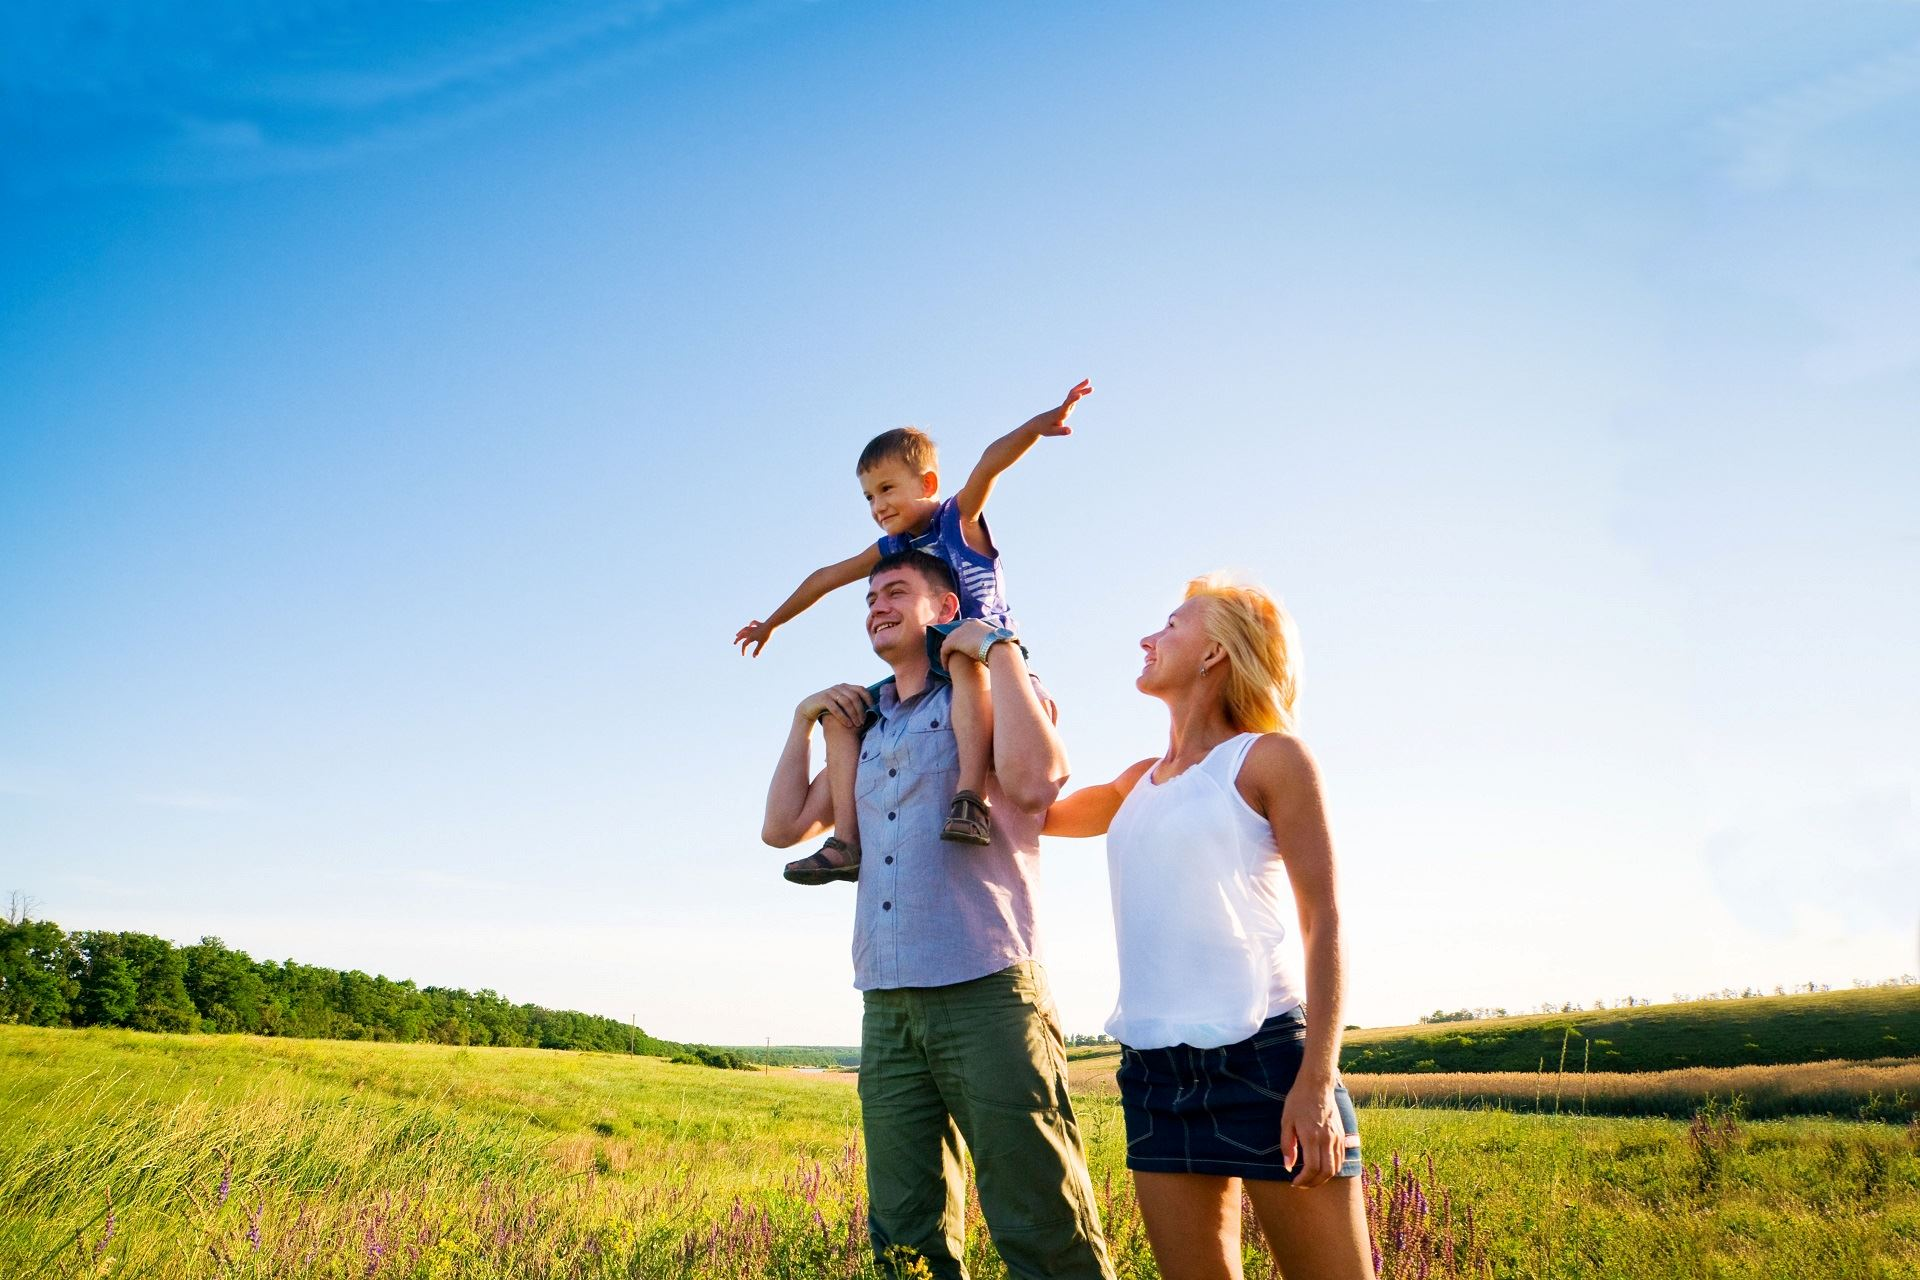 Family standing in a green field with the son on the father's shoulders holding his arms out